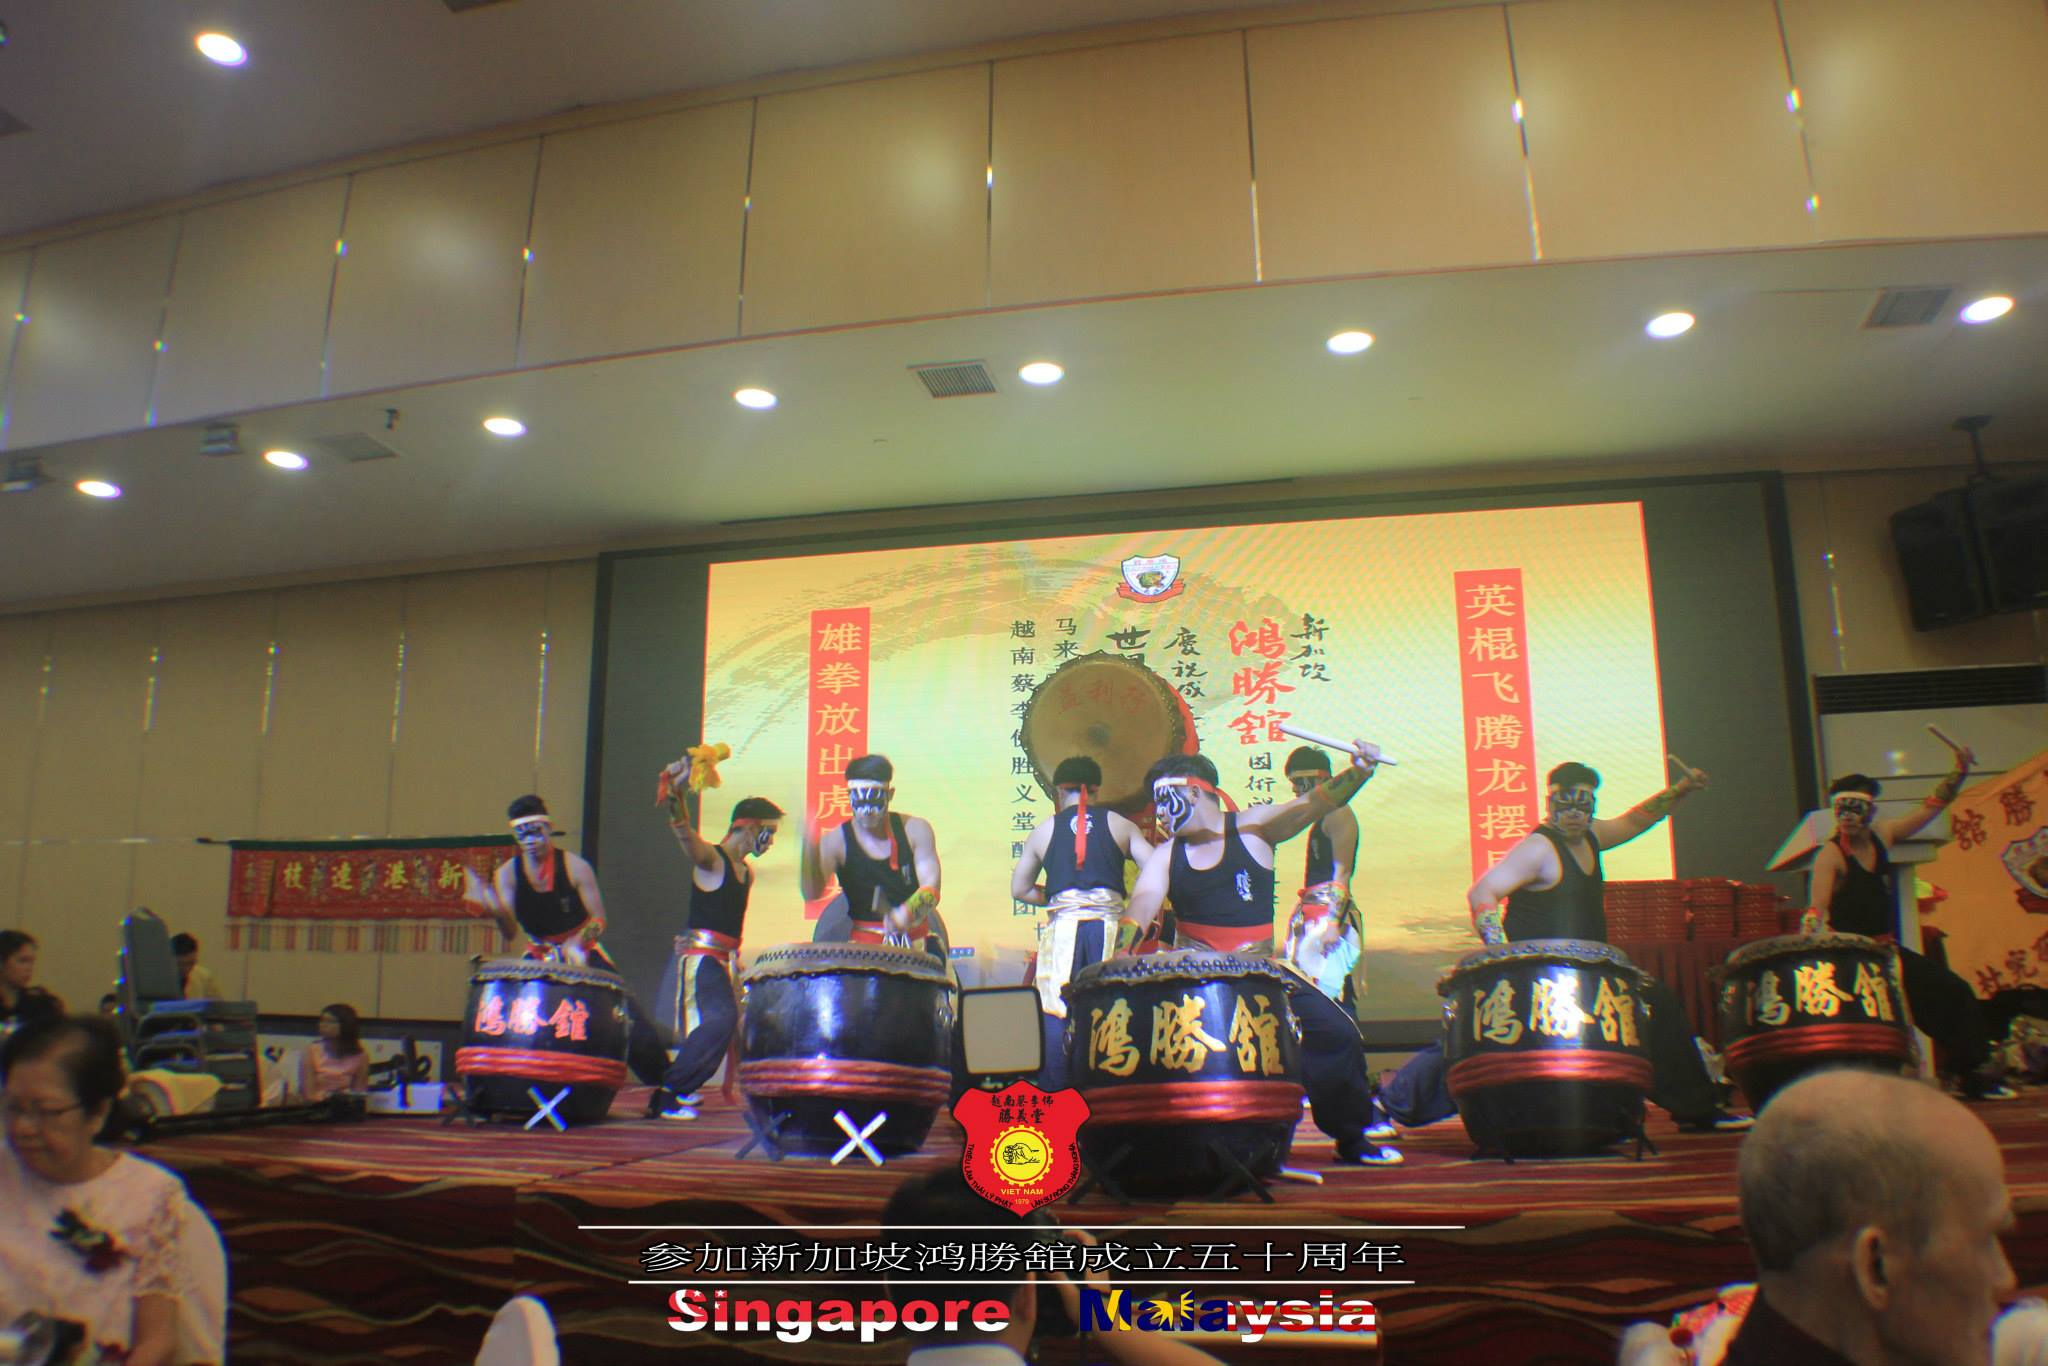 Singapore Hong Sheng Koon 50th Anniversary